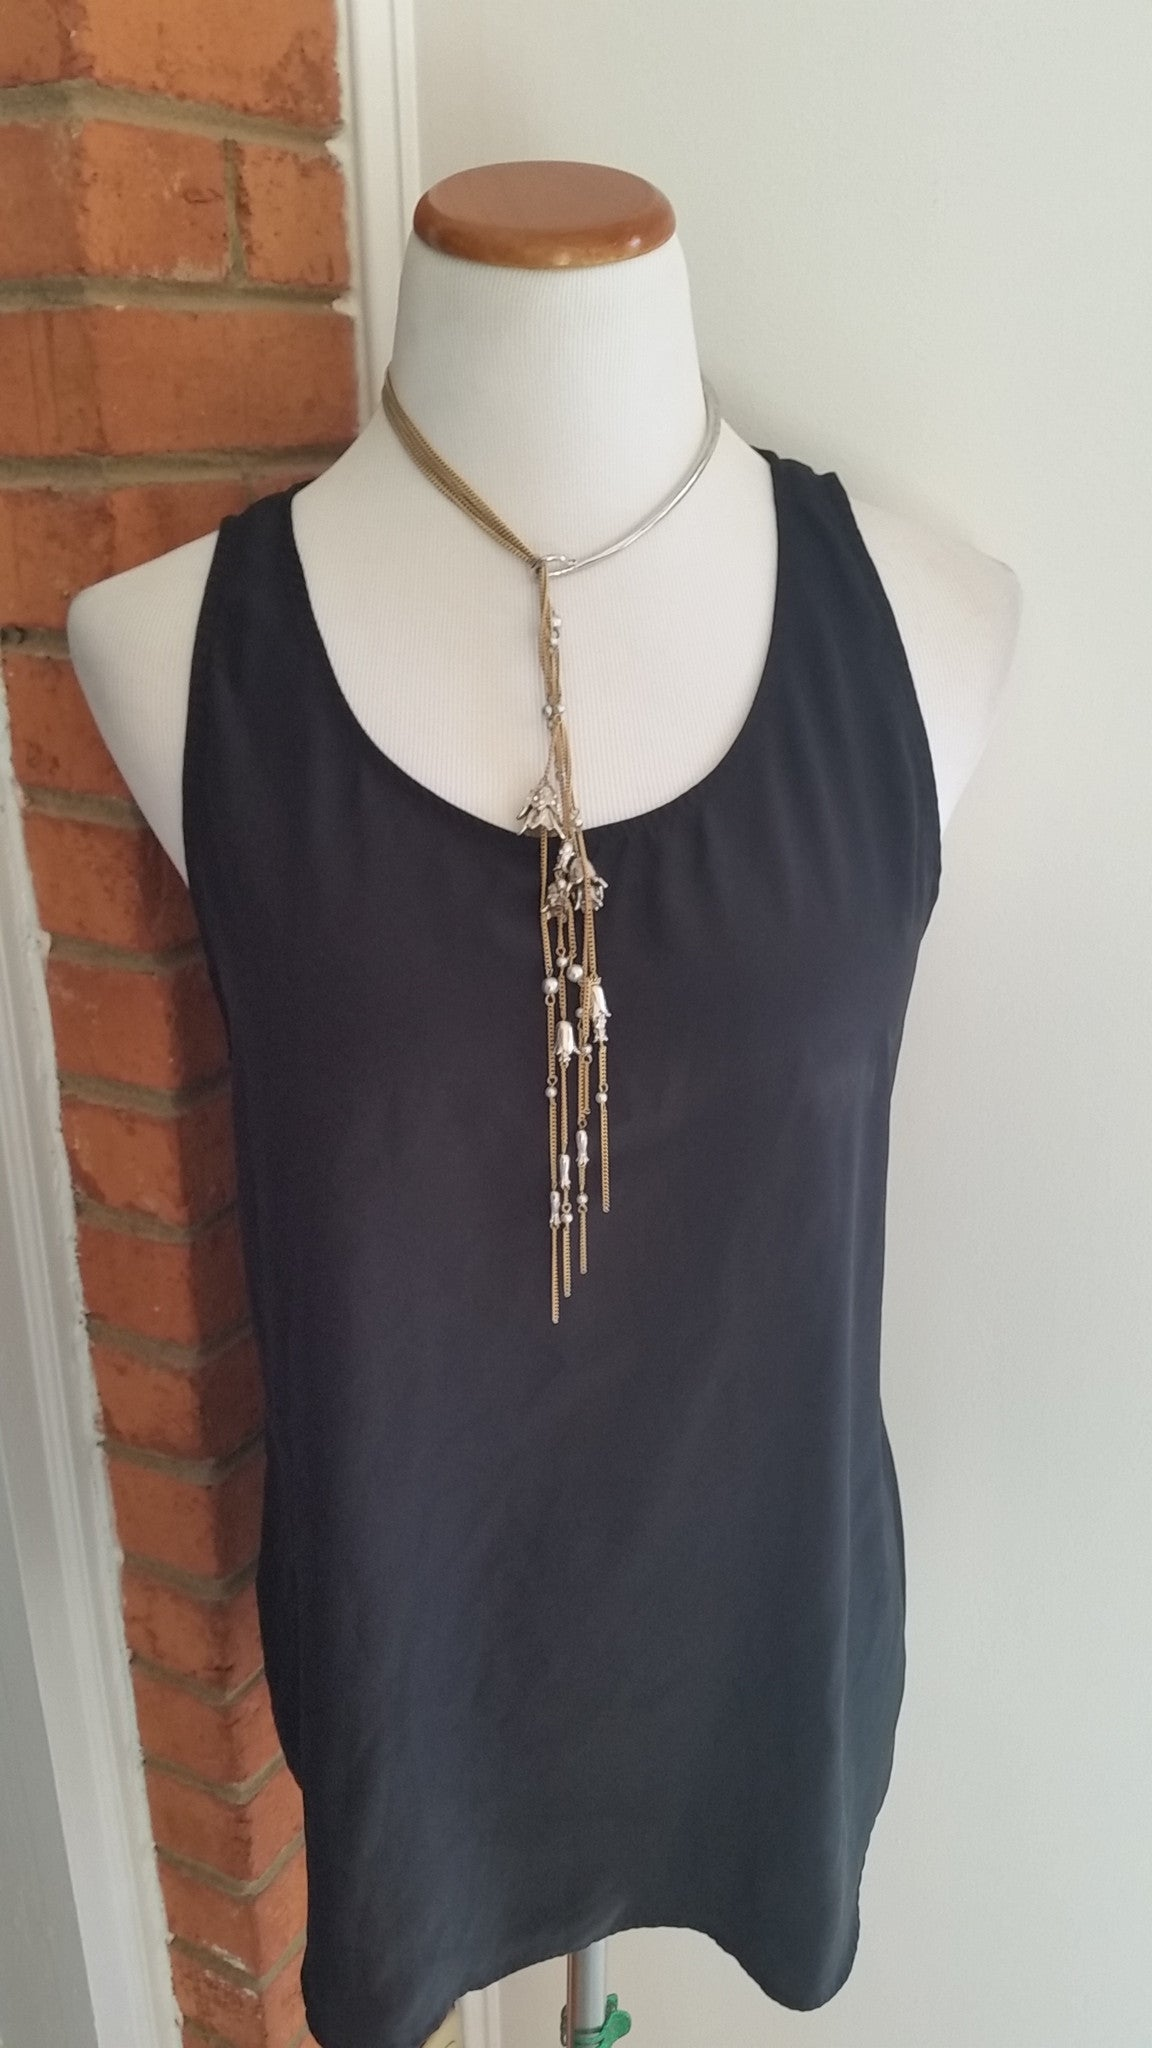 Long Hanging Florets Necklace by Chloe and Isabel